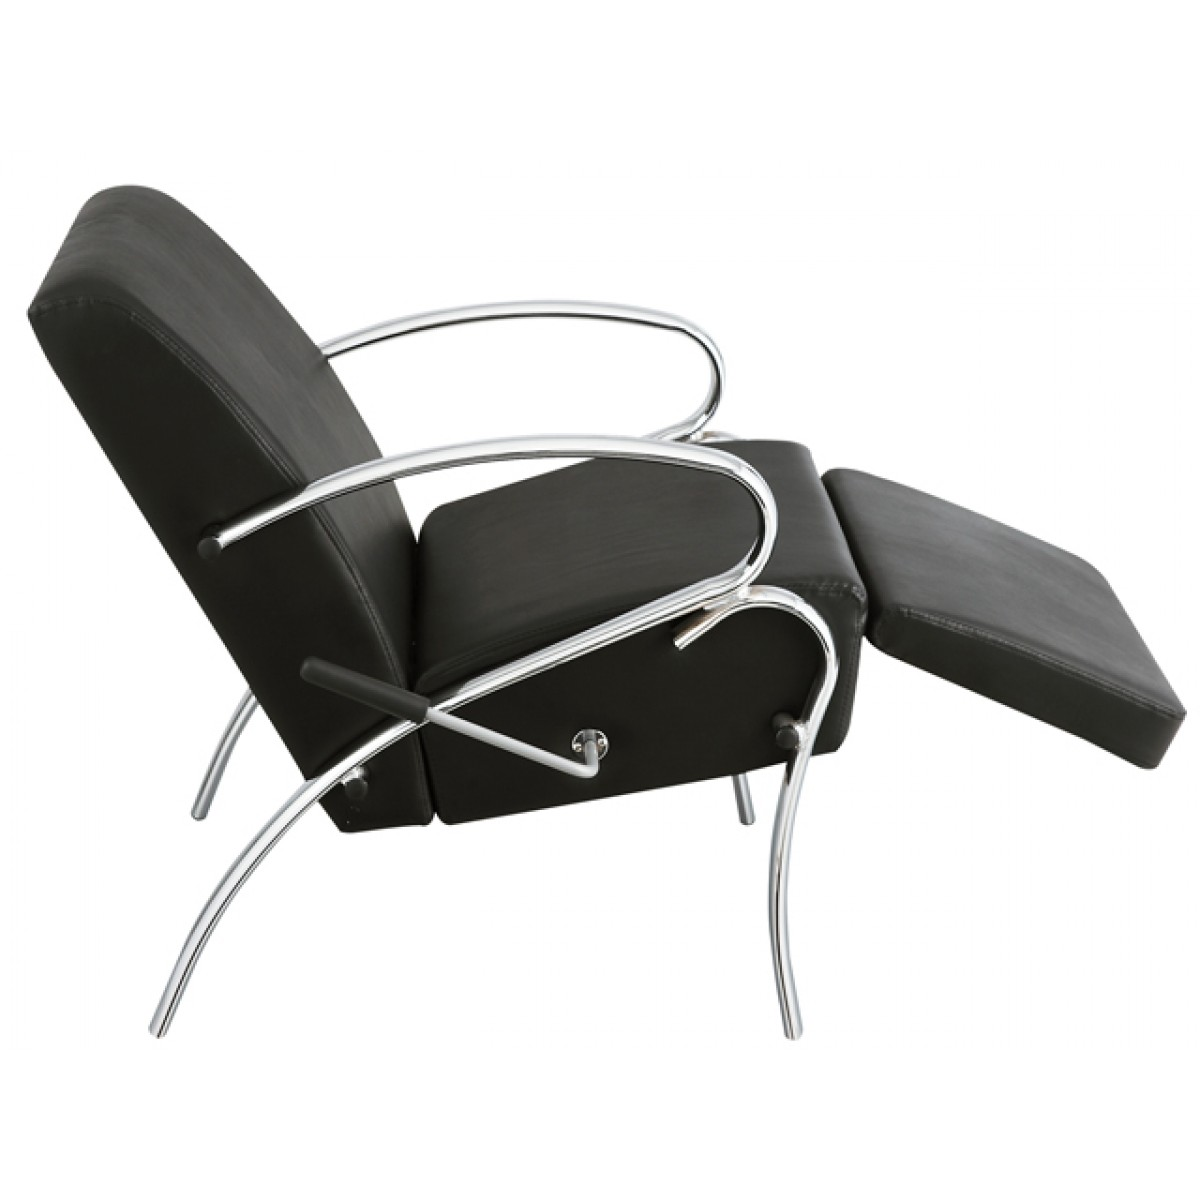 Salon Shampoo Chairs Chaise Lounge Shampoo Chair